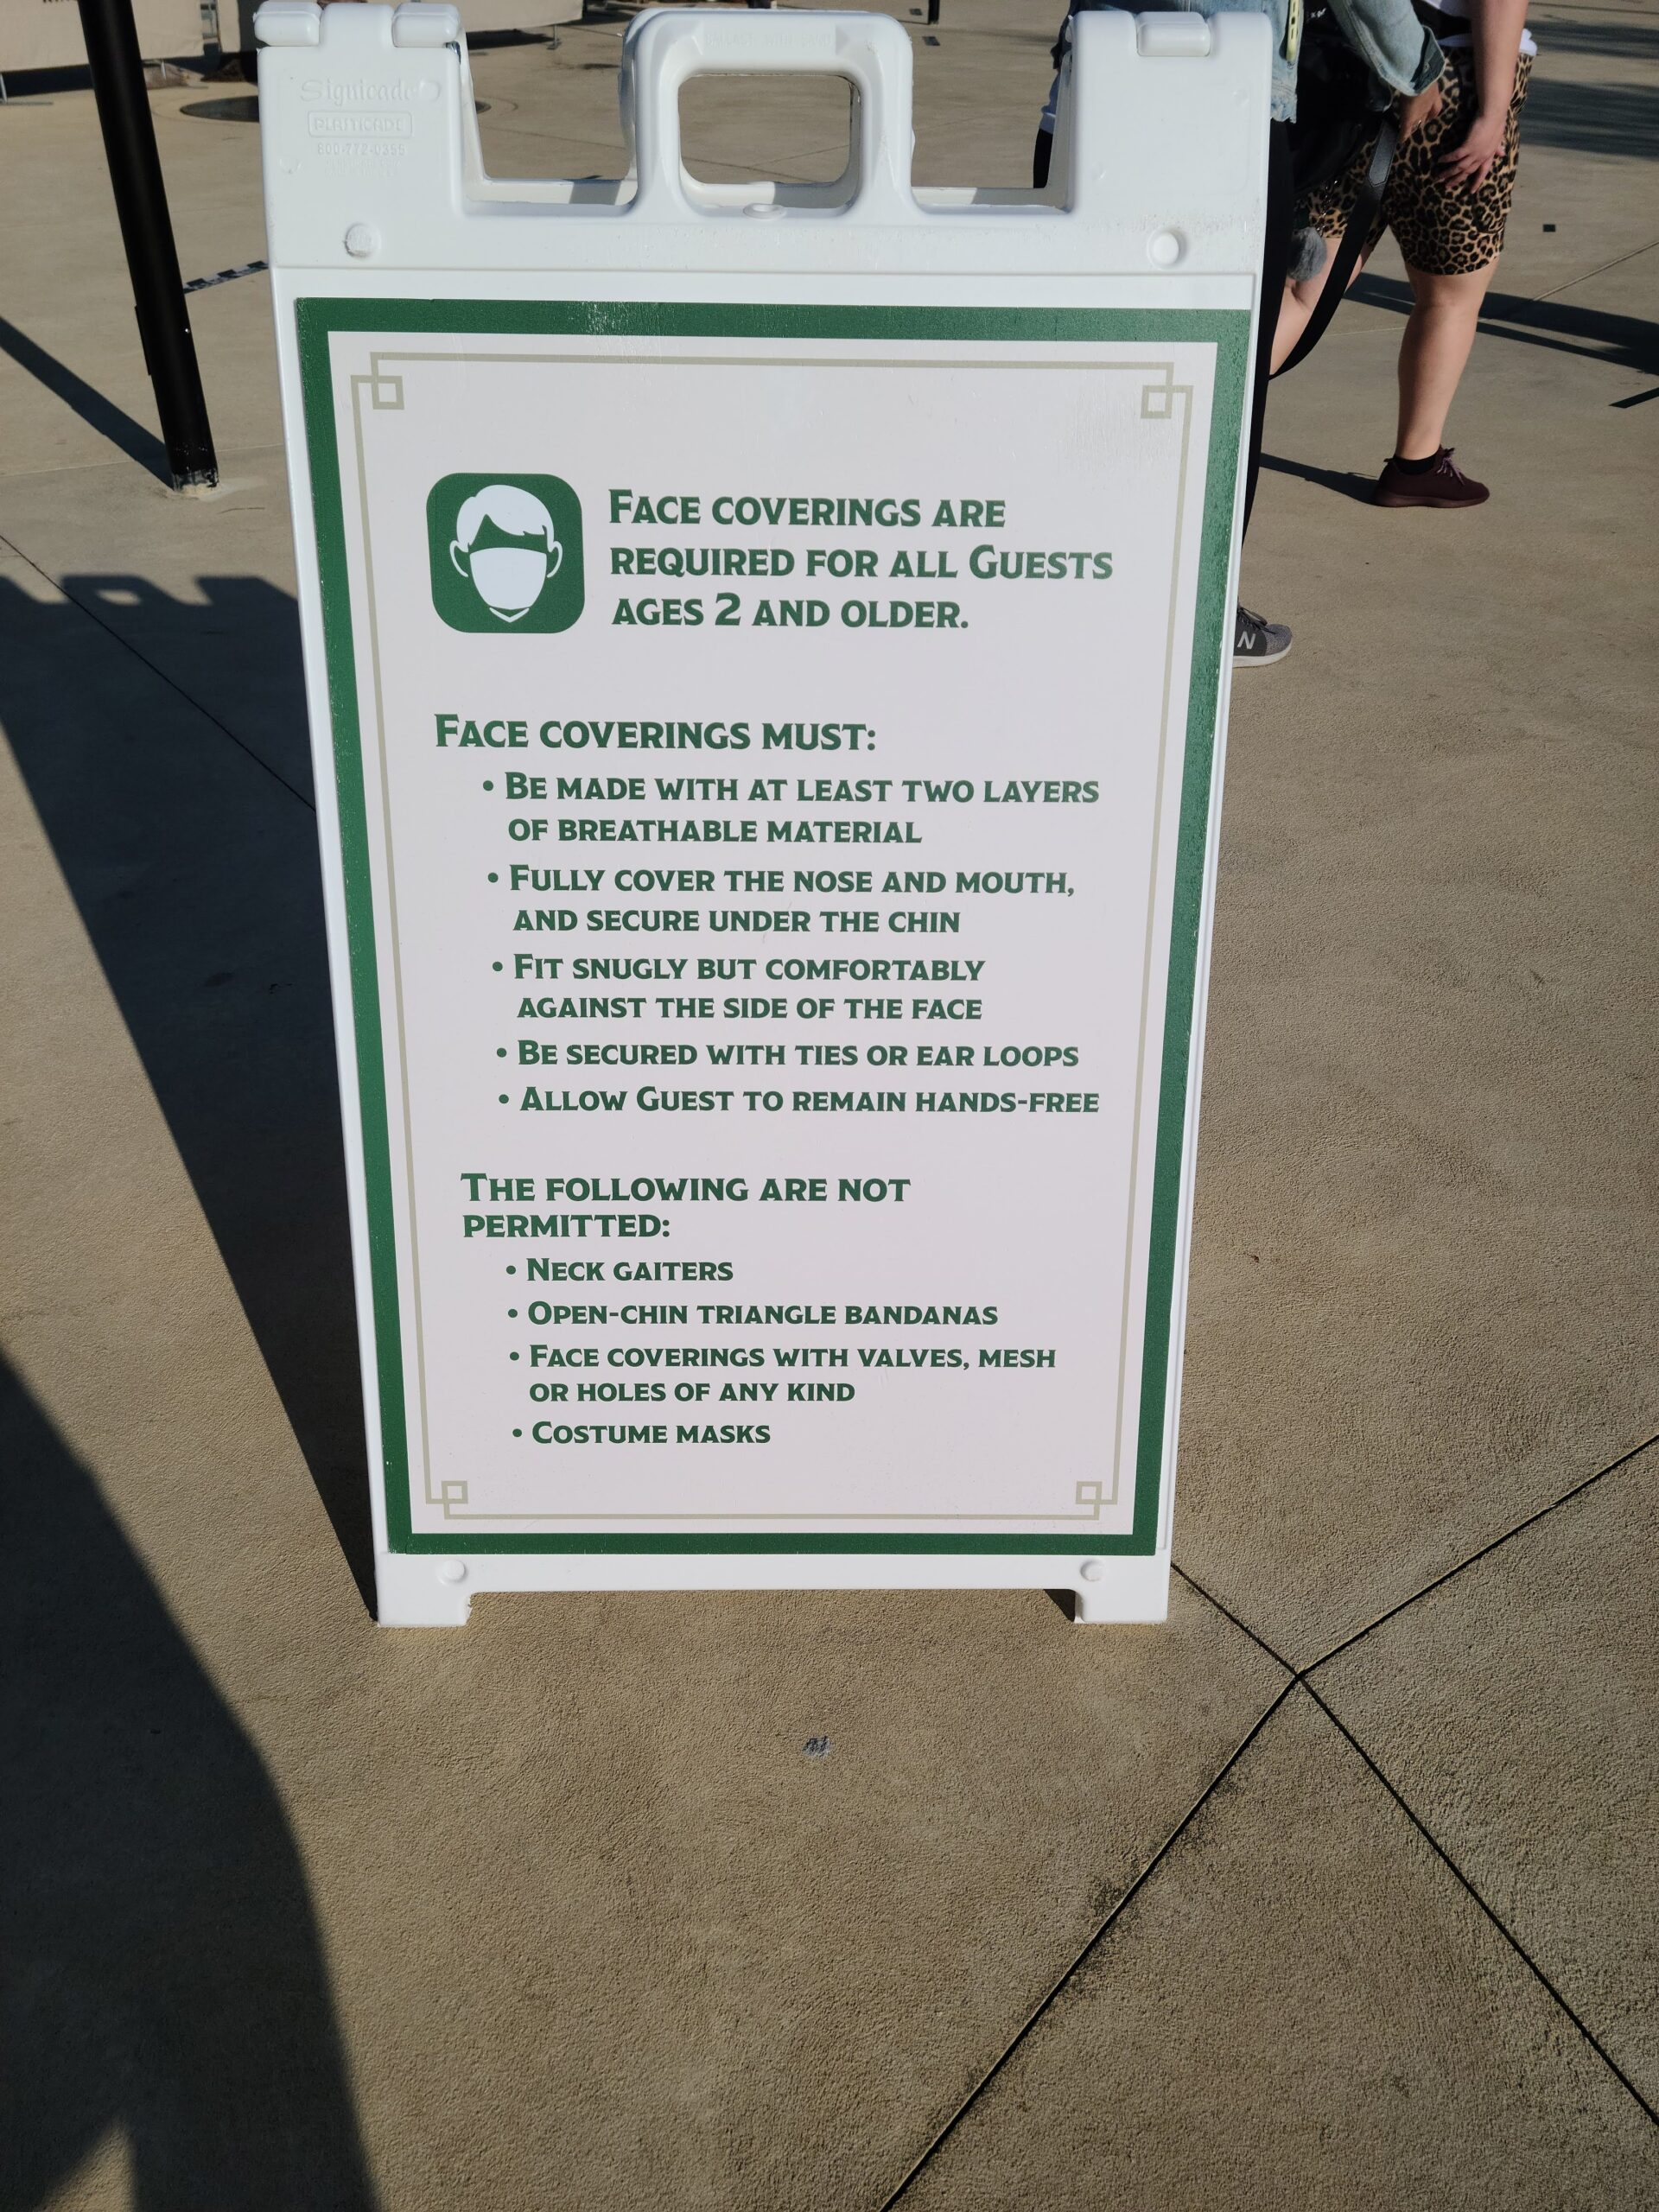 Disney World Will No Longer Require Face Masks Outdoors as of May 15th! News 1